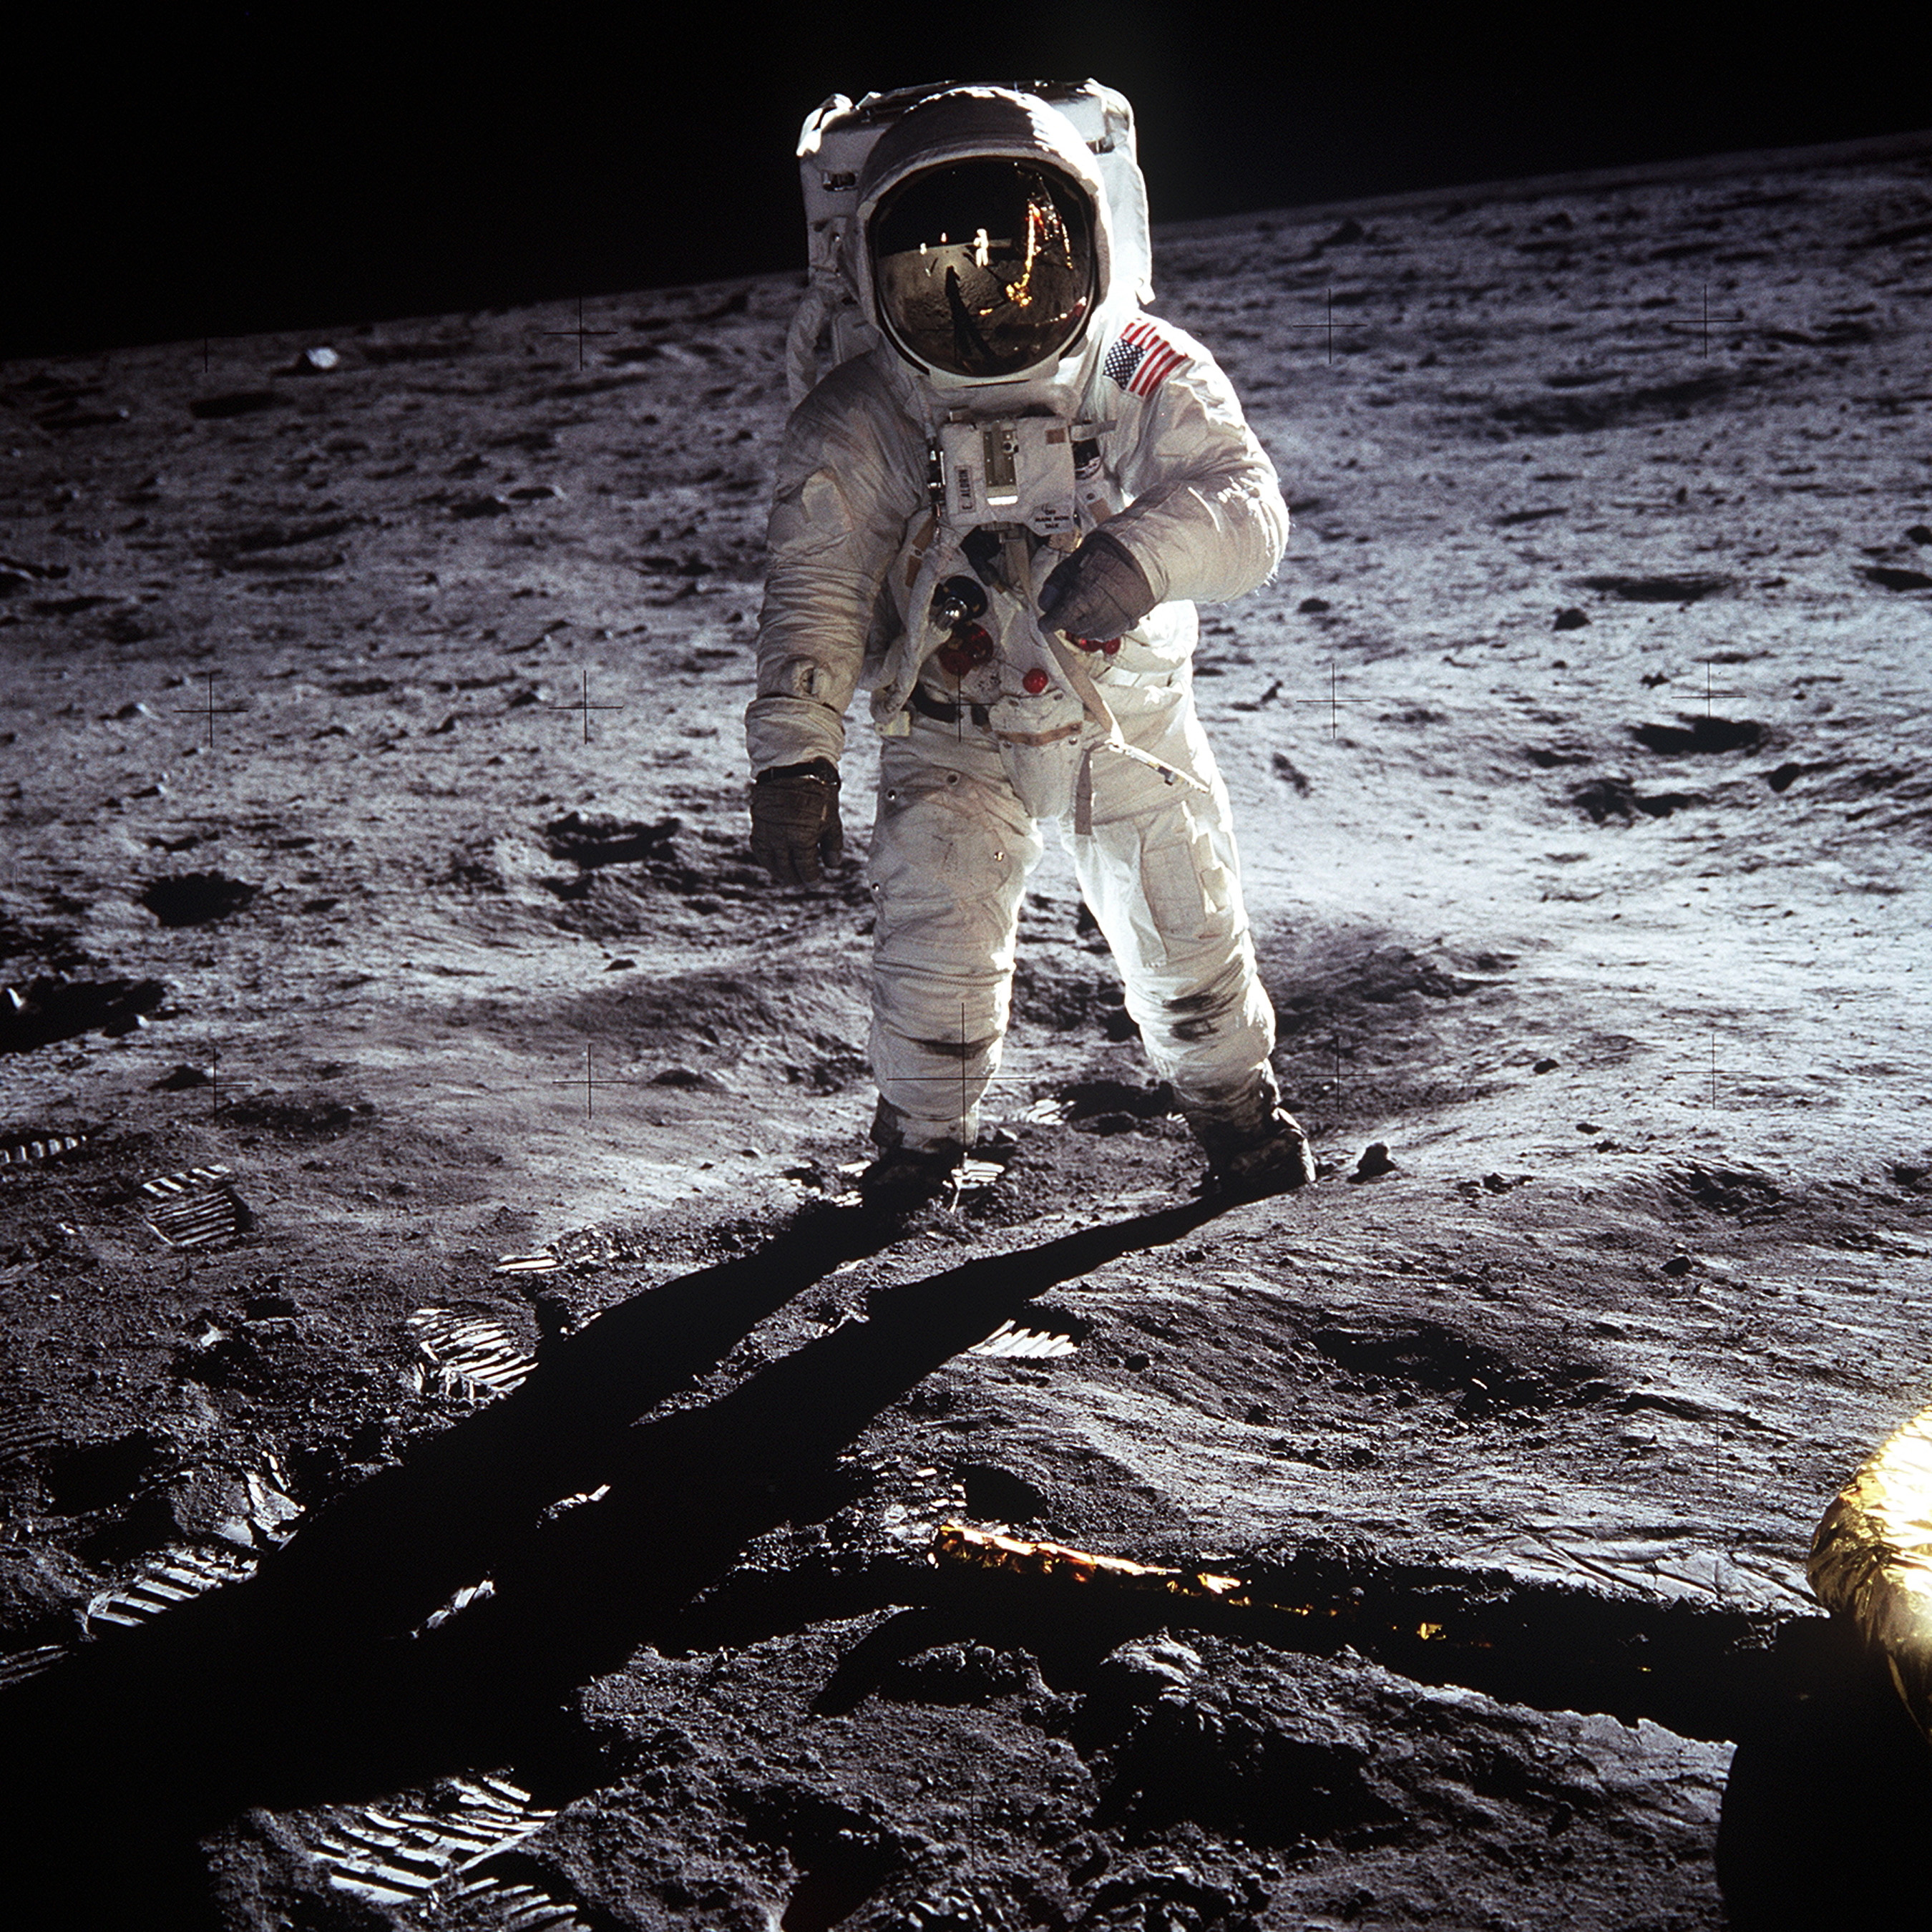 neil armstrong moon exploration - photo #1